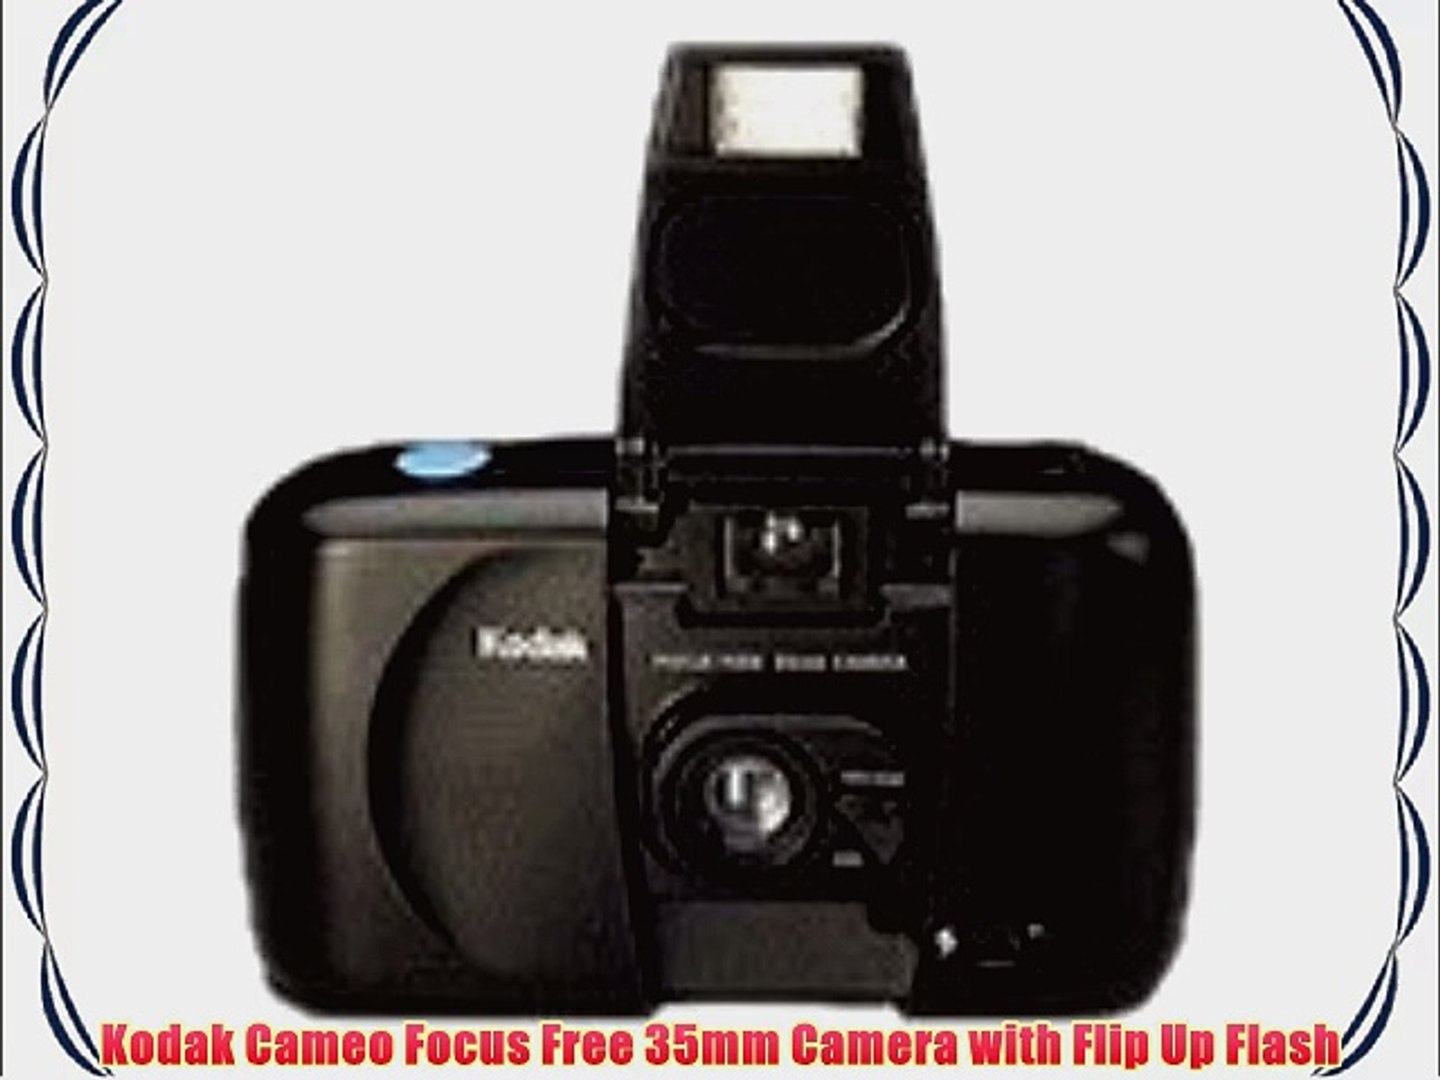 Kodak Cameo Focus Free 35mm Camera with Flip Up Flash